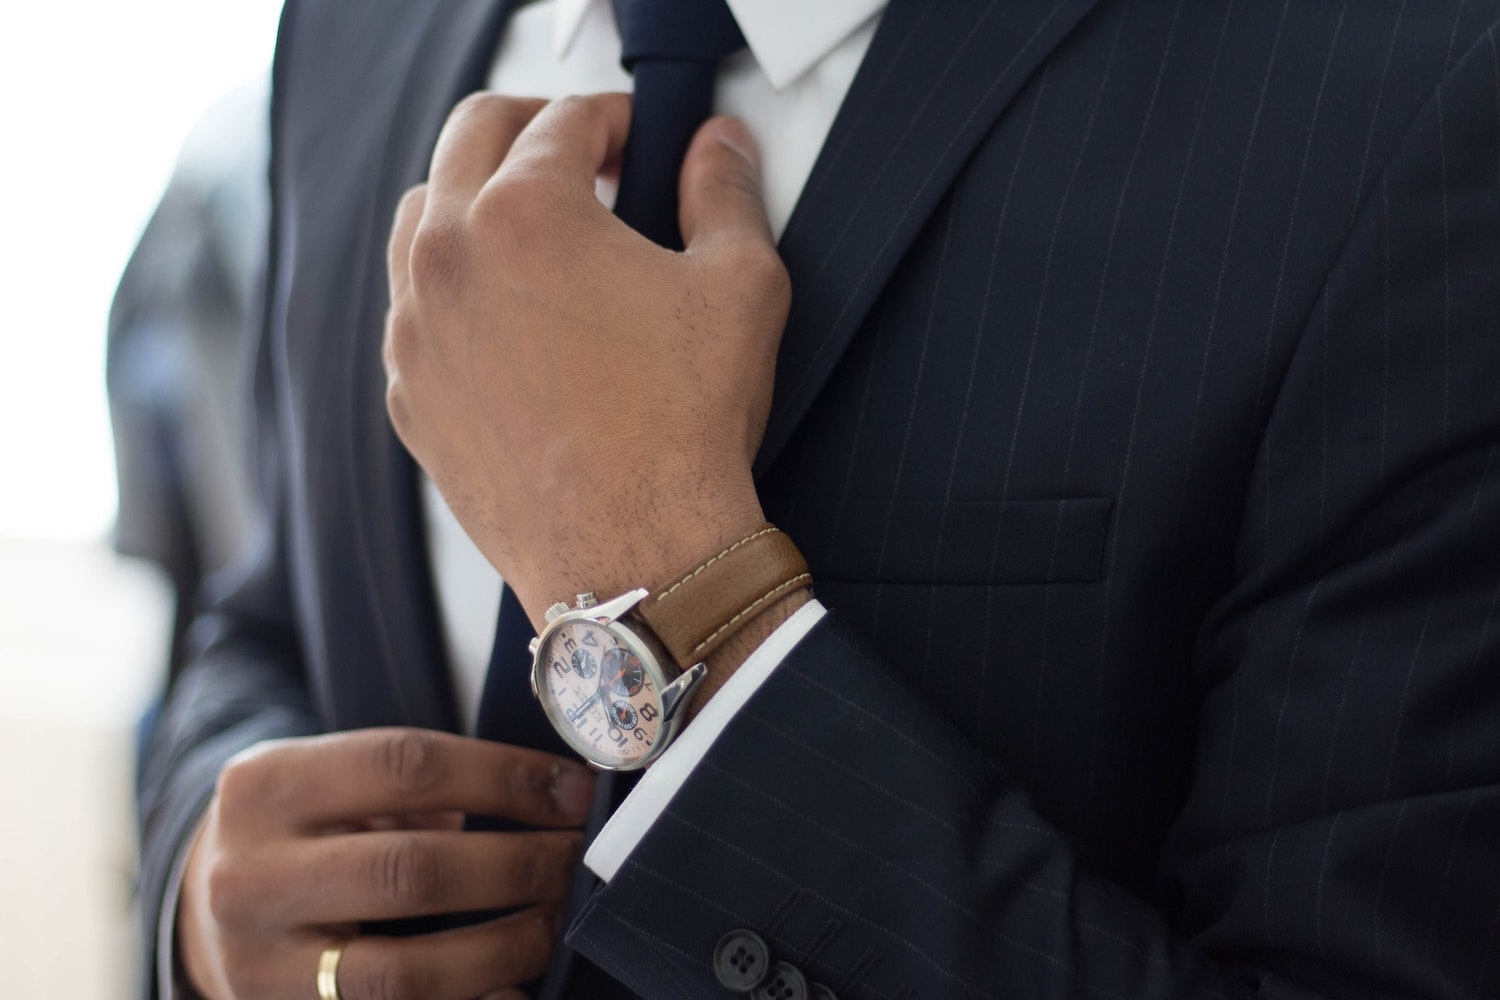 Close up image of man in suite and tie.